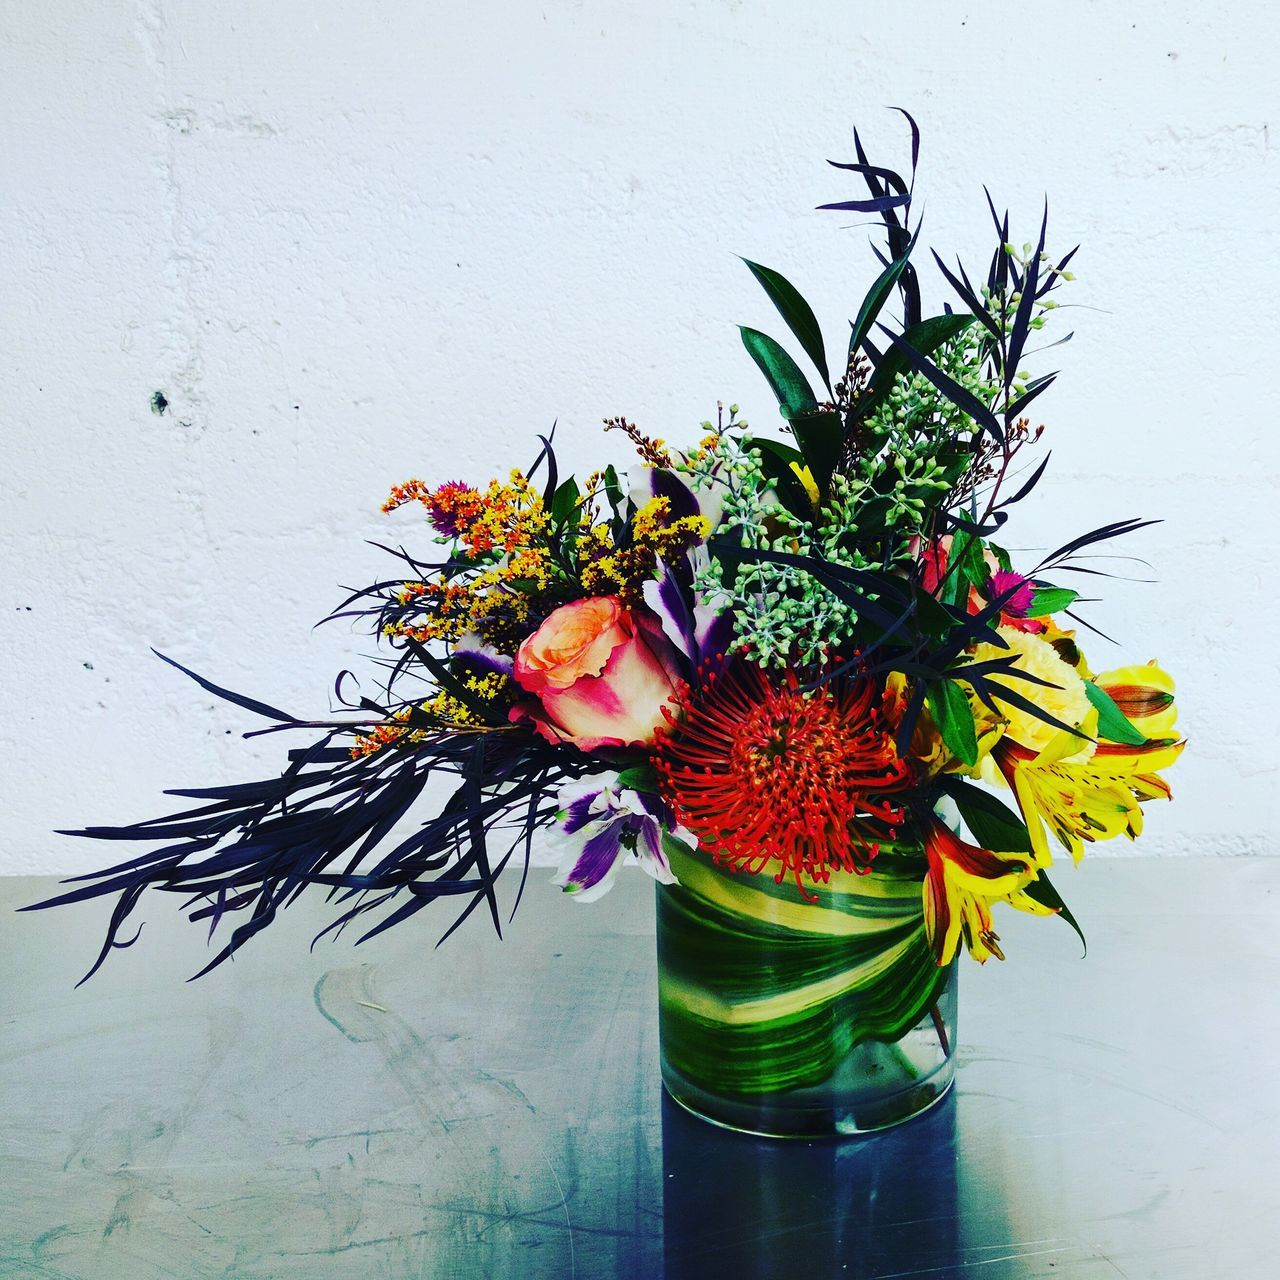 flower, wall - building feature, vase, plant, no people, nature, table, leaf, green color, beauty in nature, growth, freshness, fragility, indoors, day, multi colored, close-up, flower head